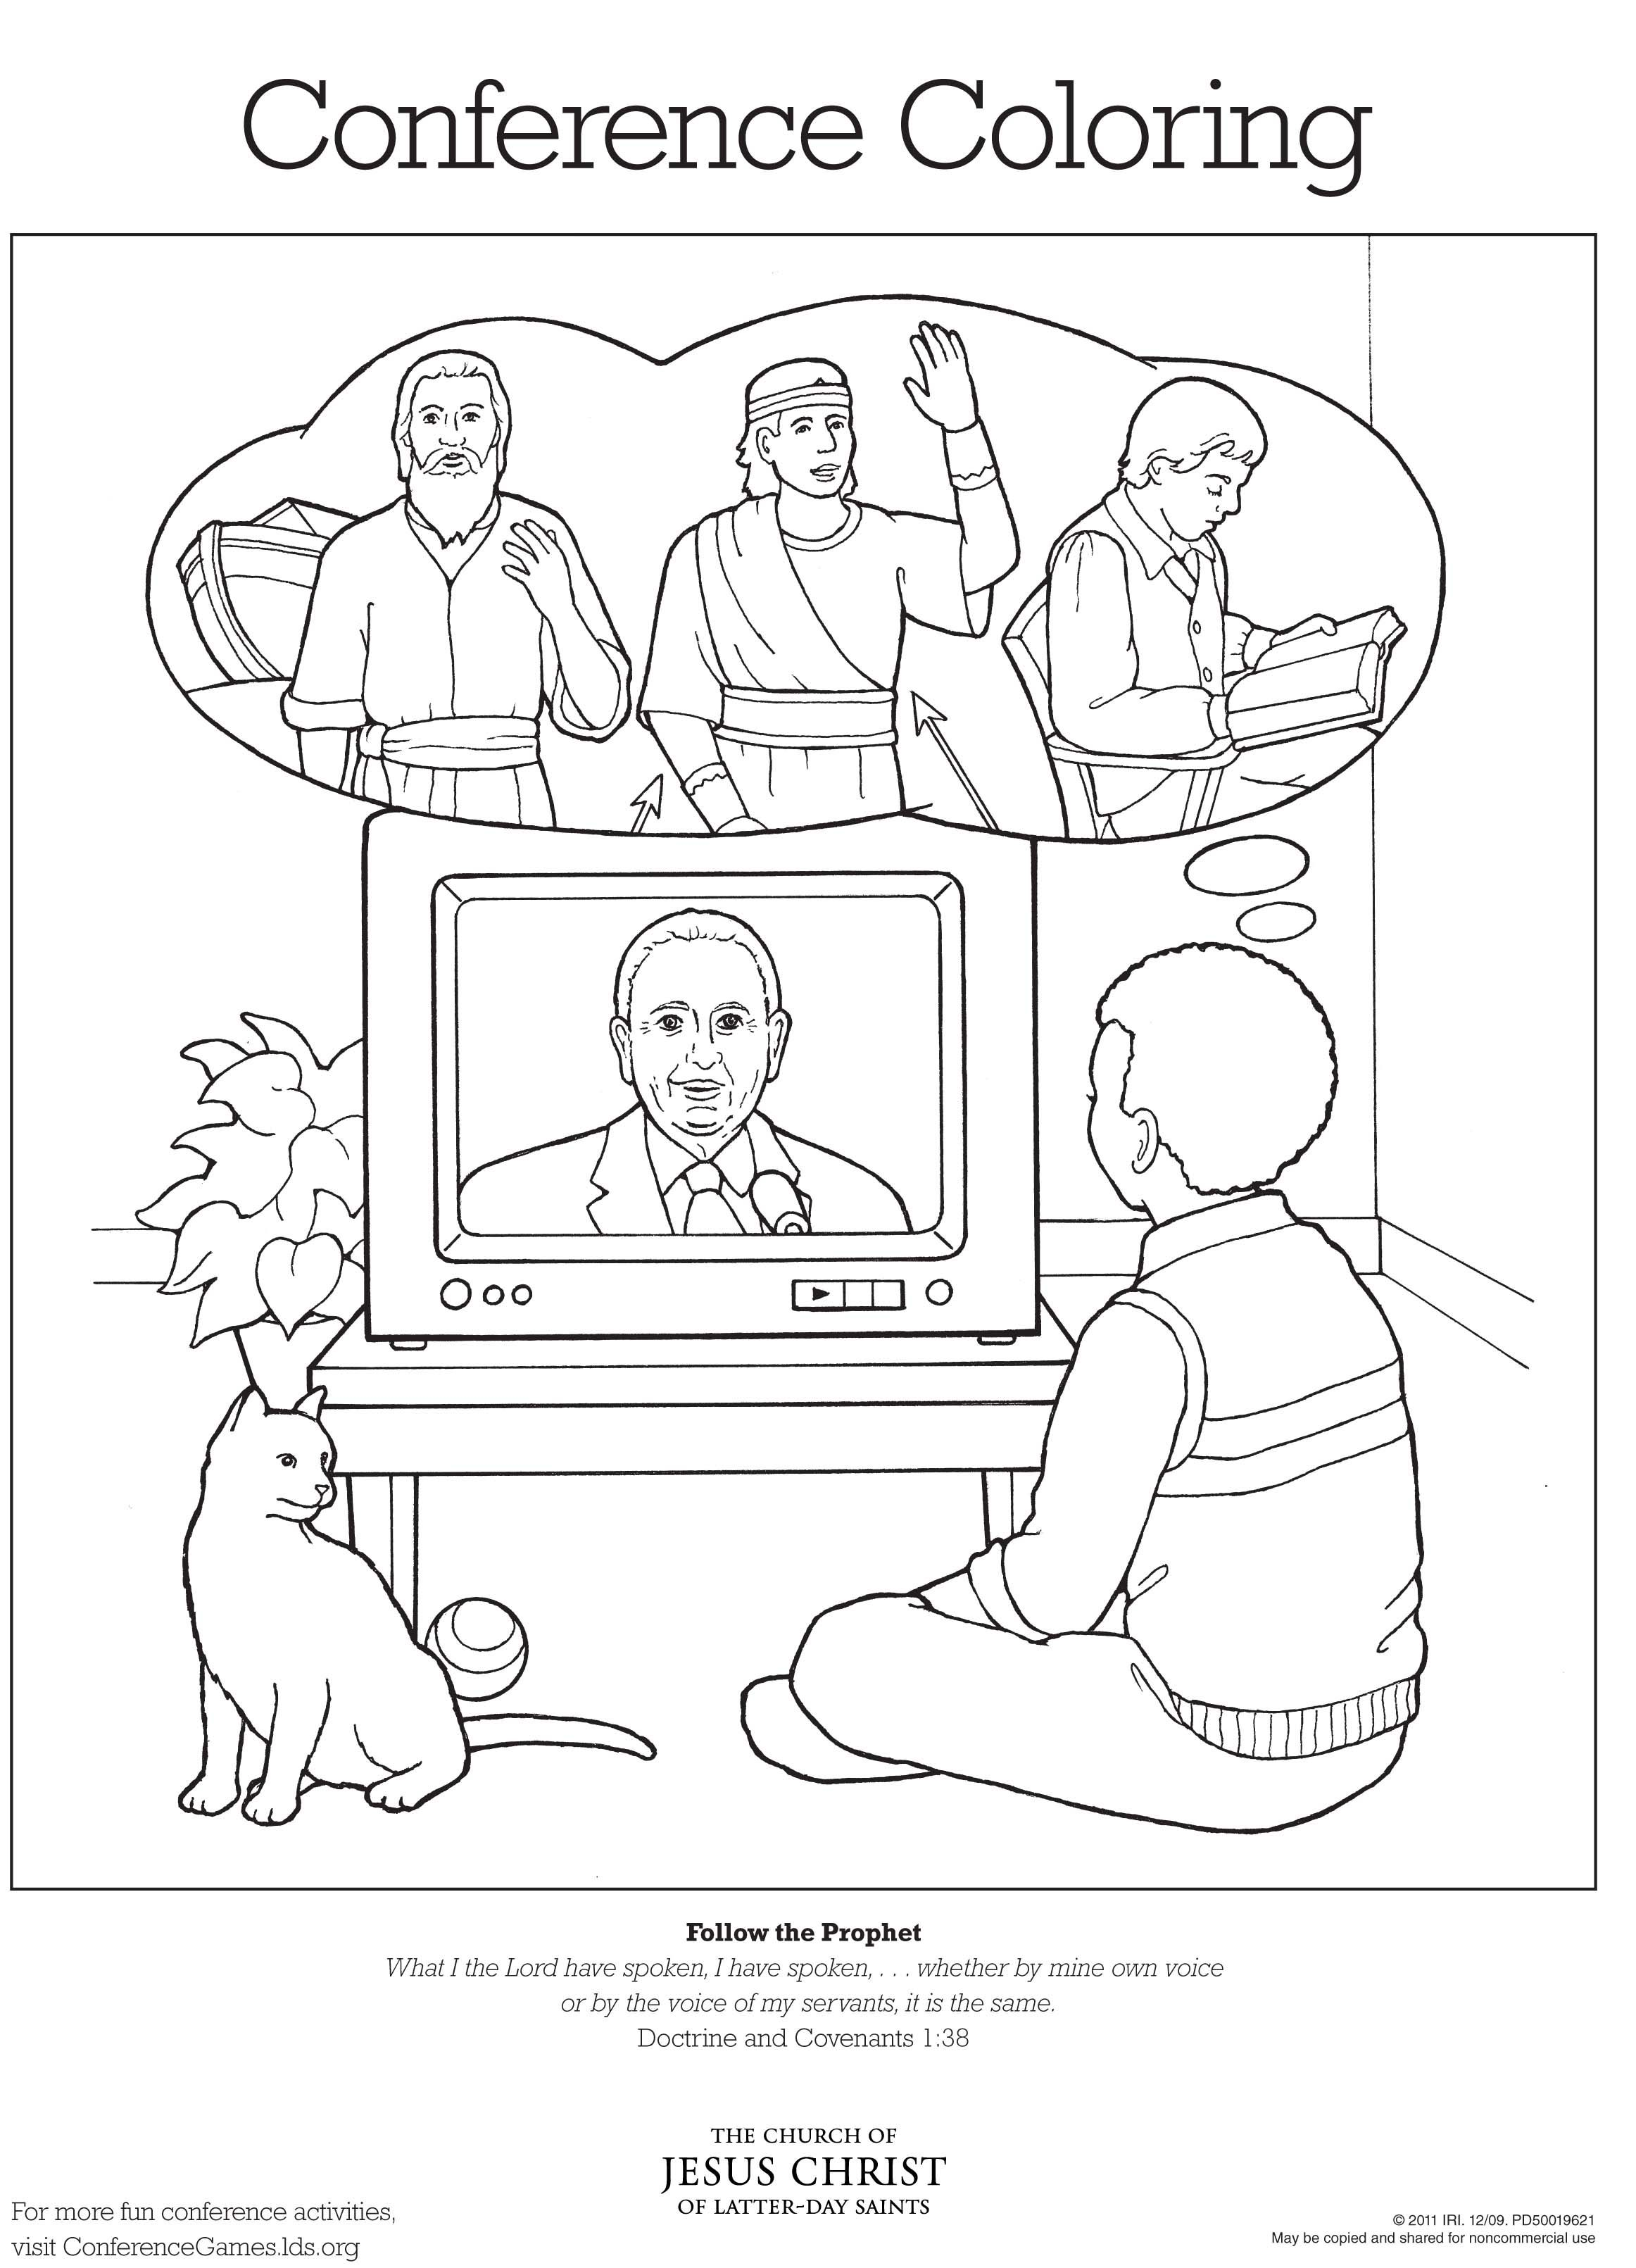 Conference Coloring Page 1